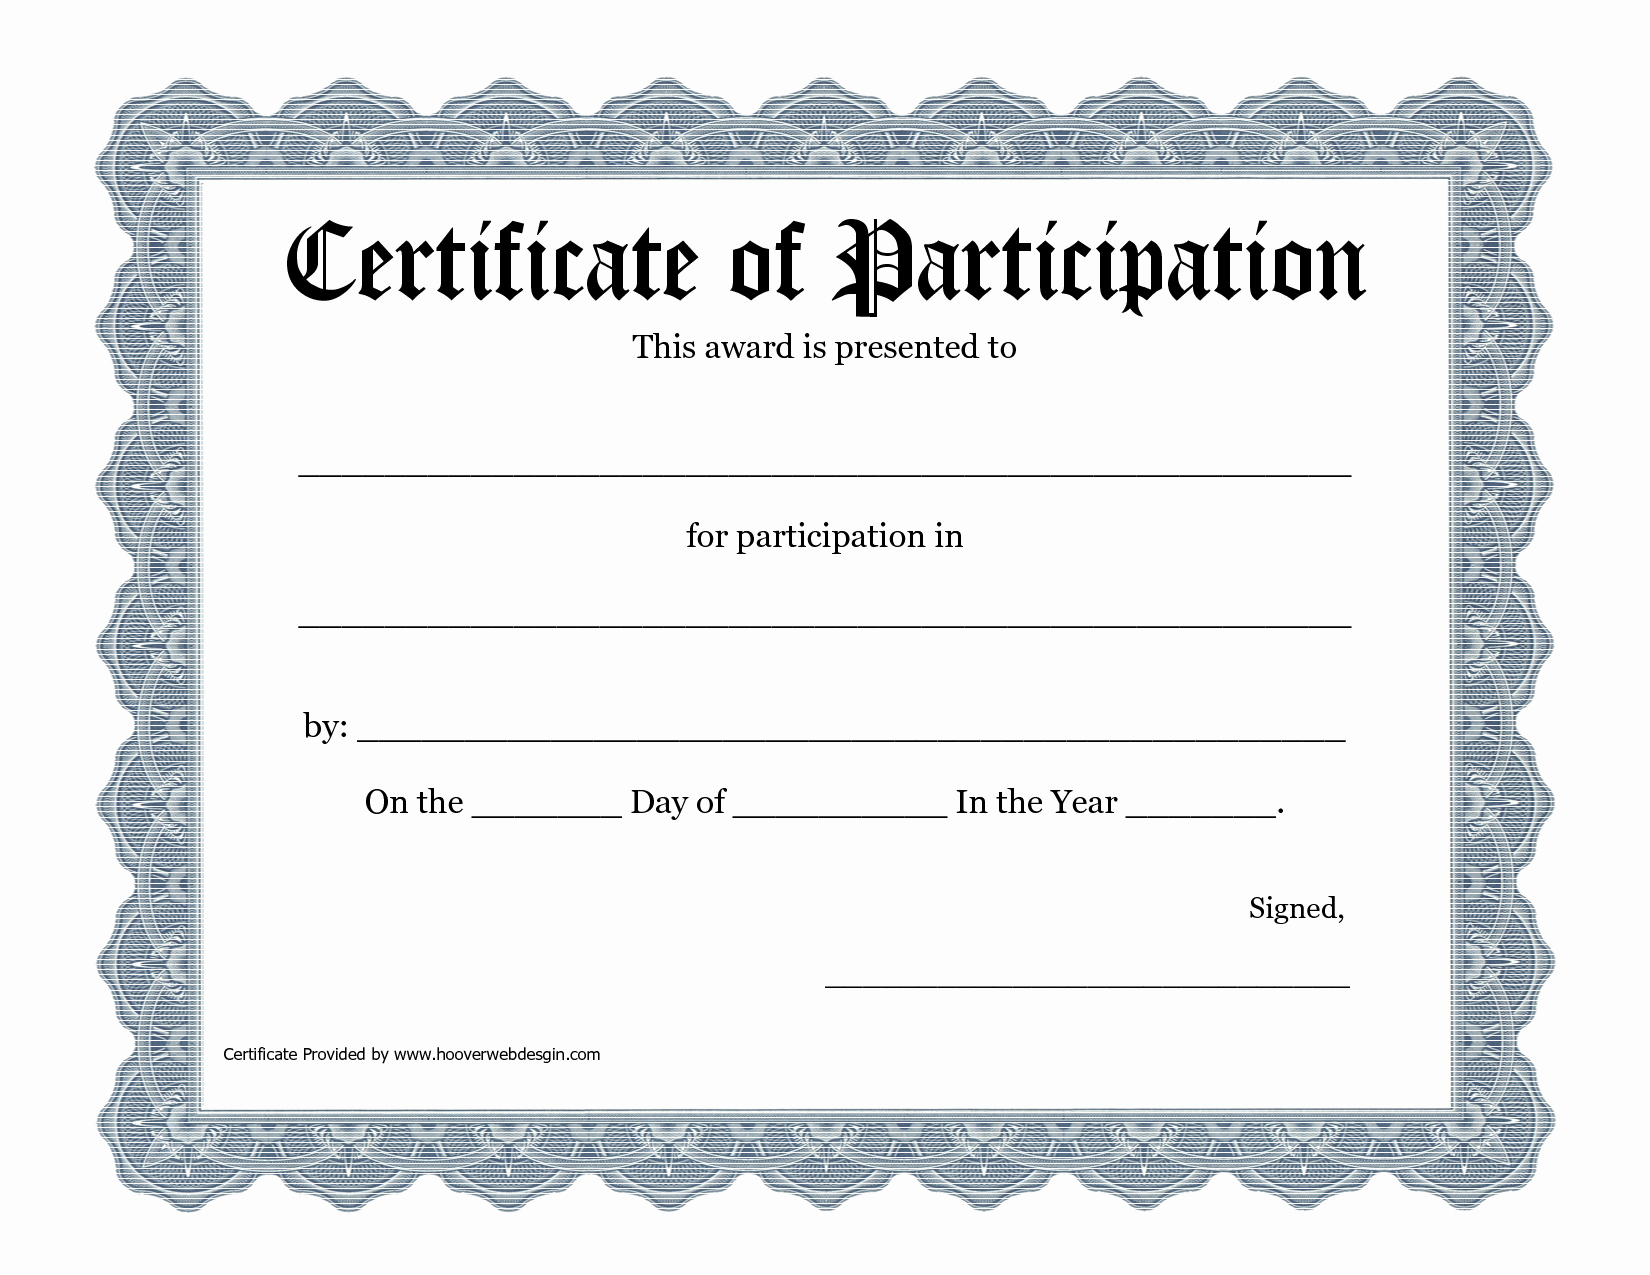 Certificate Of Participation Pdf Best Of Certificate Of Participation Template Pdf